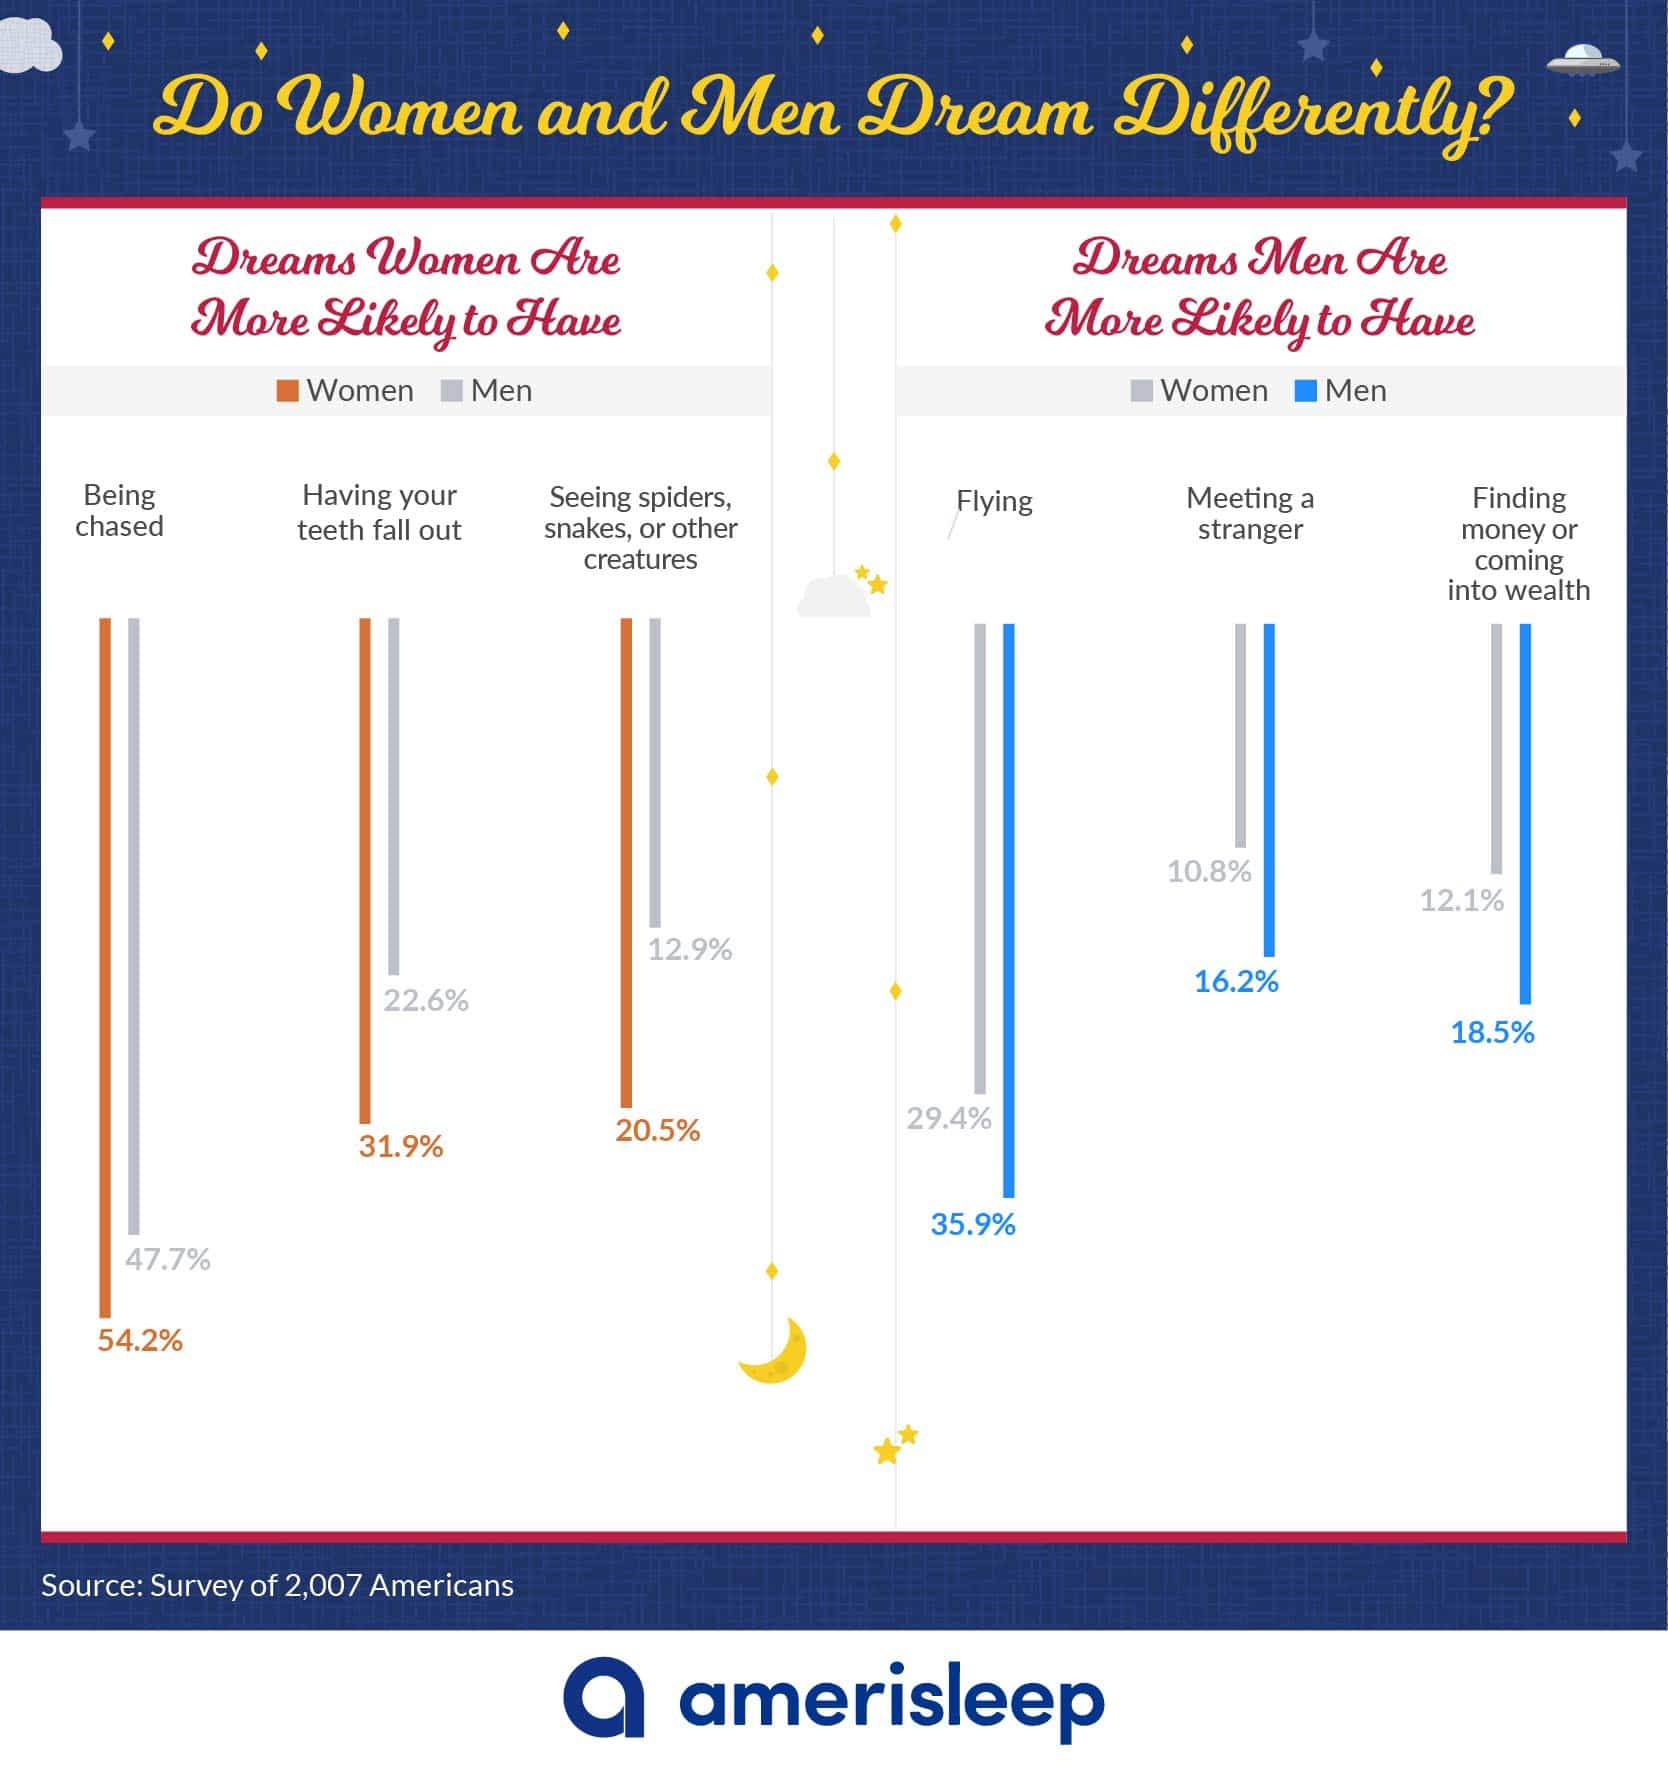 Do Women and Men Dream Differently?